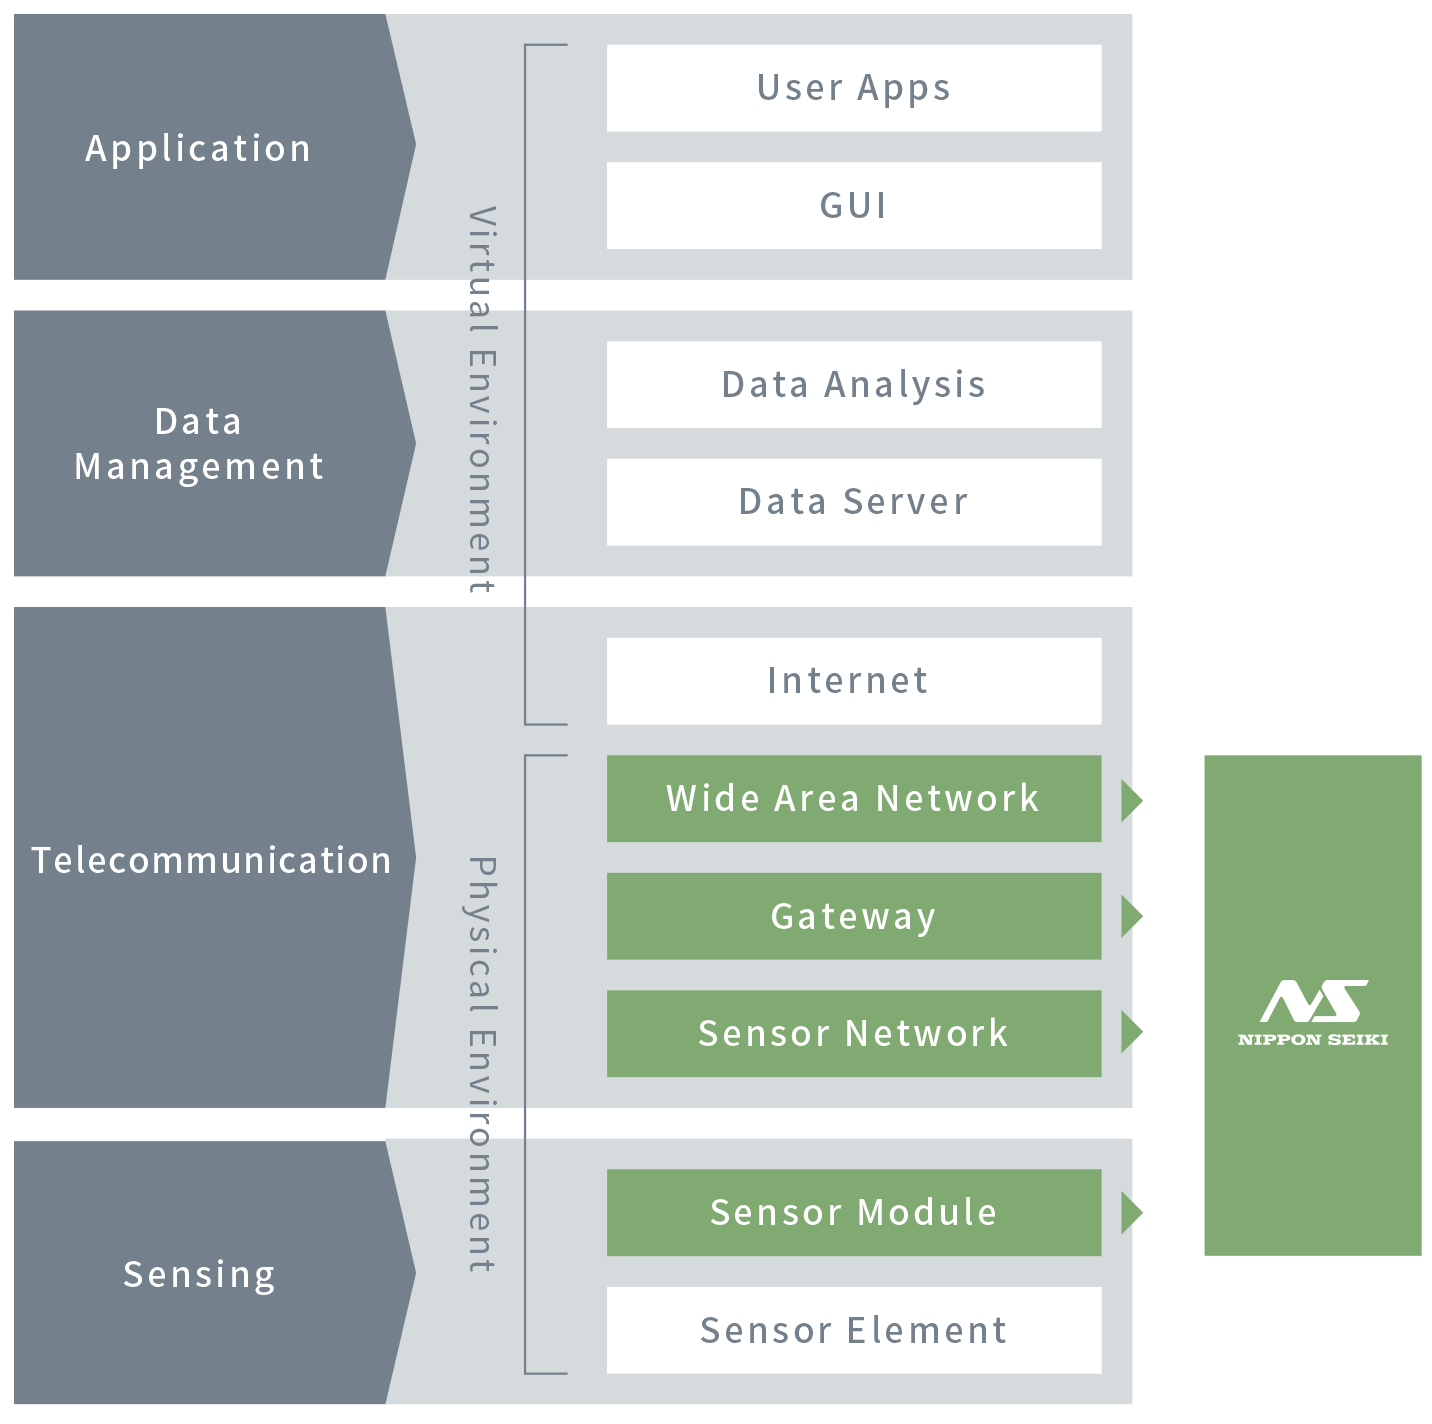 Our Supporting Areas in the IoT Hierarchical Architecture